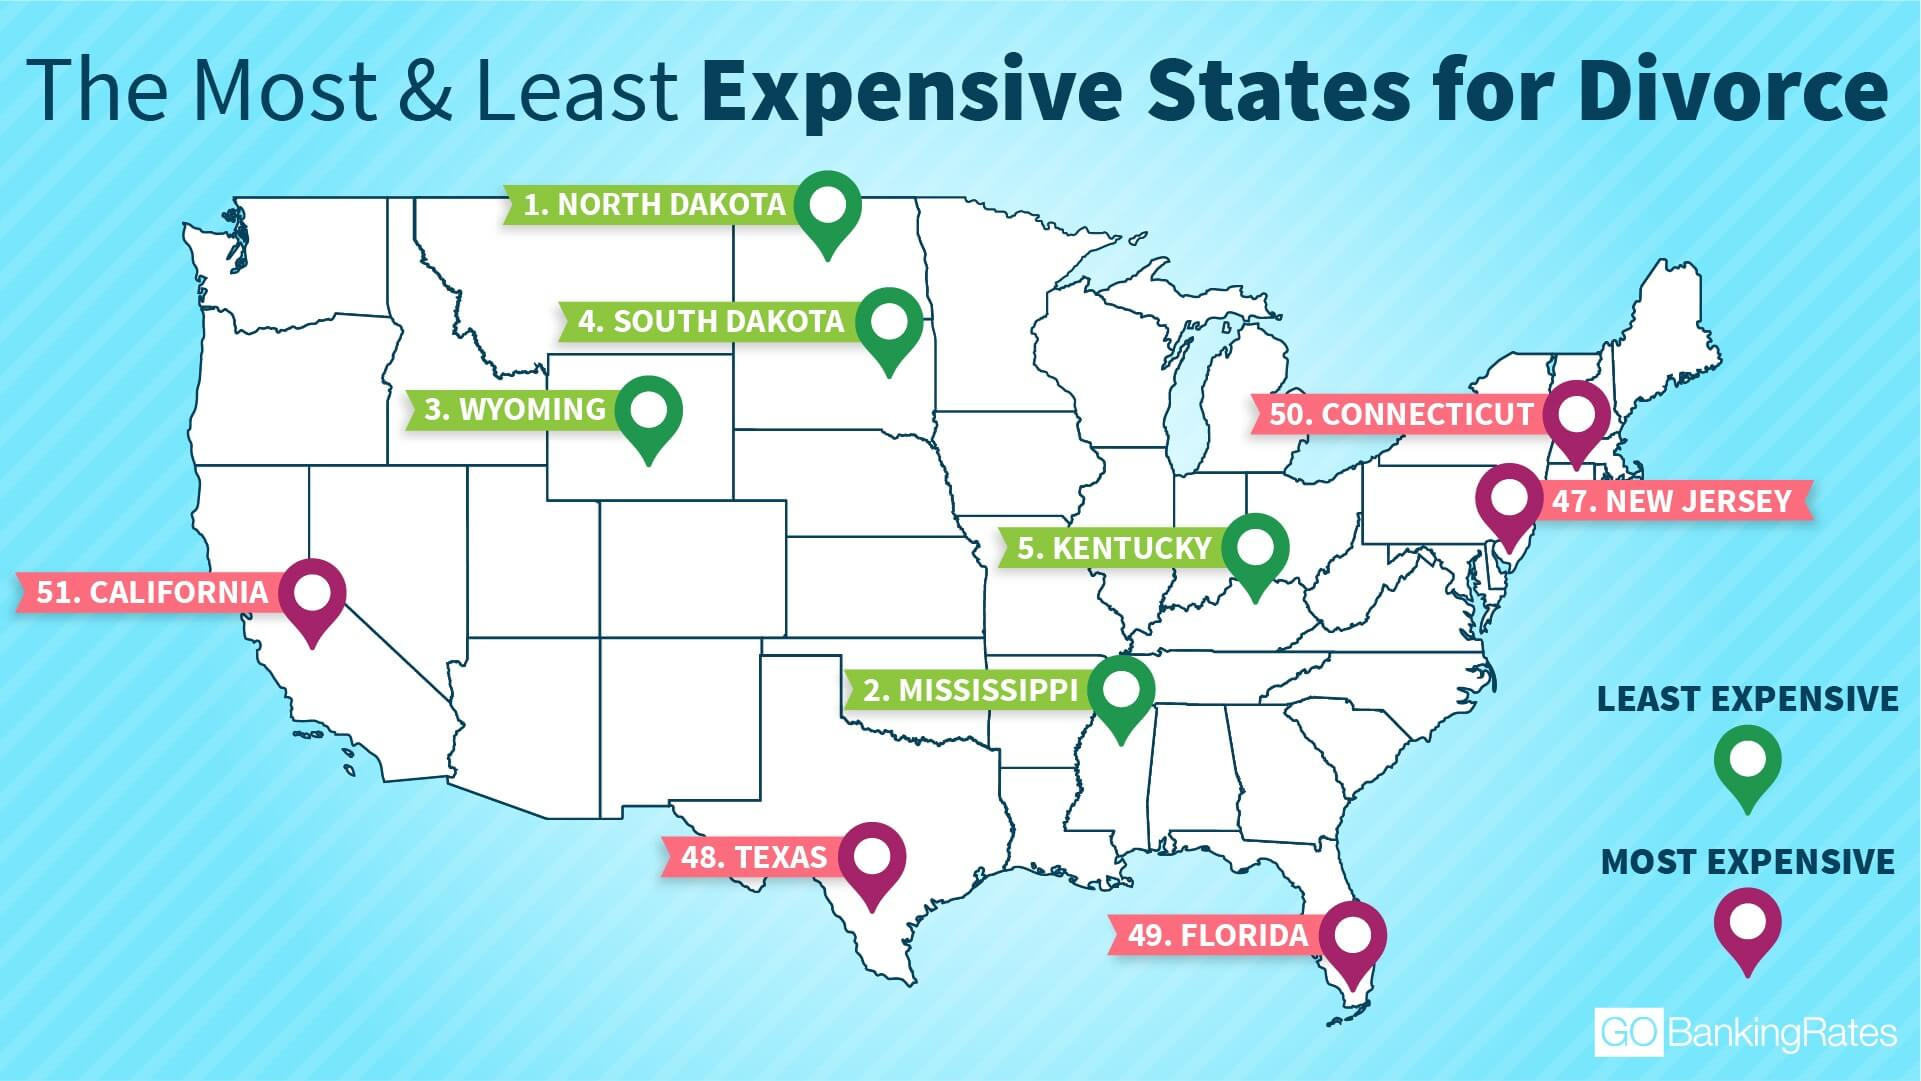 Map of the most and least expensive states for divorce